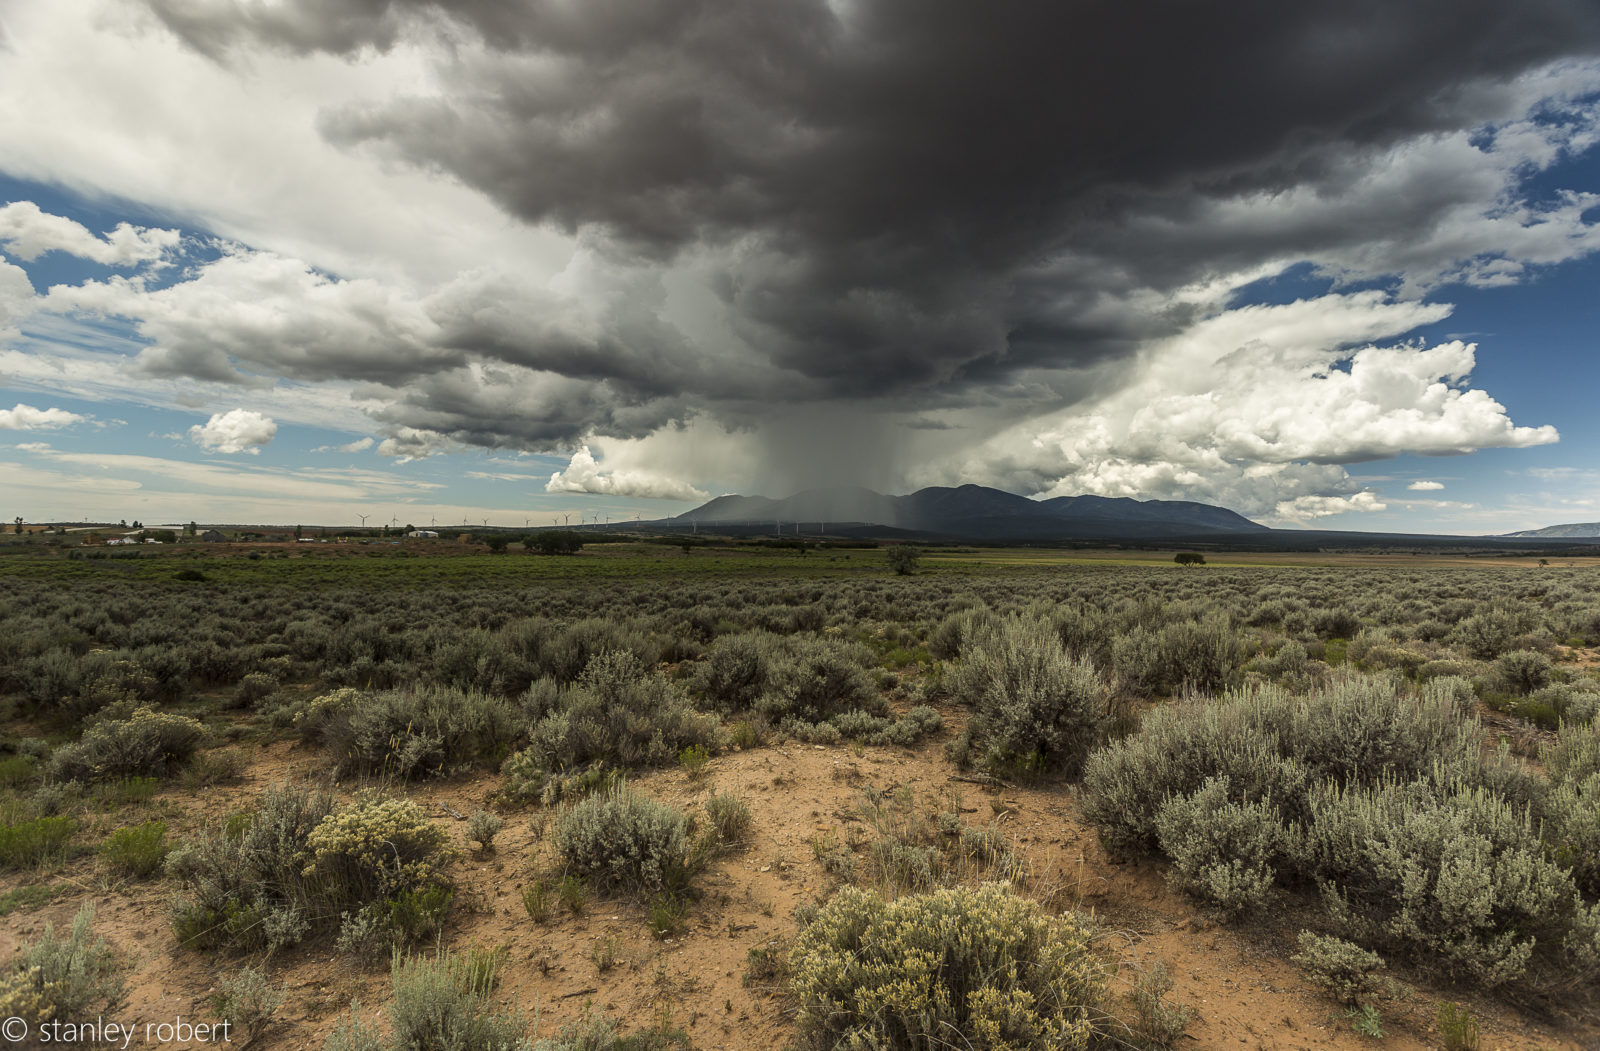 Storm clouds by Arches National Park